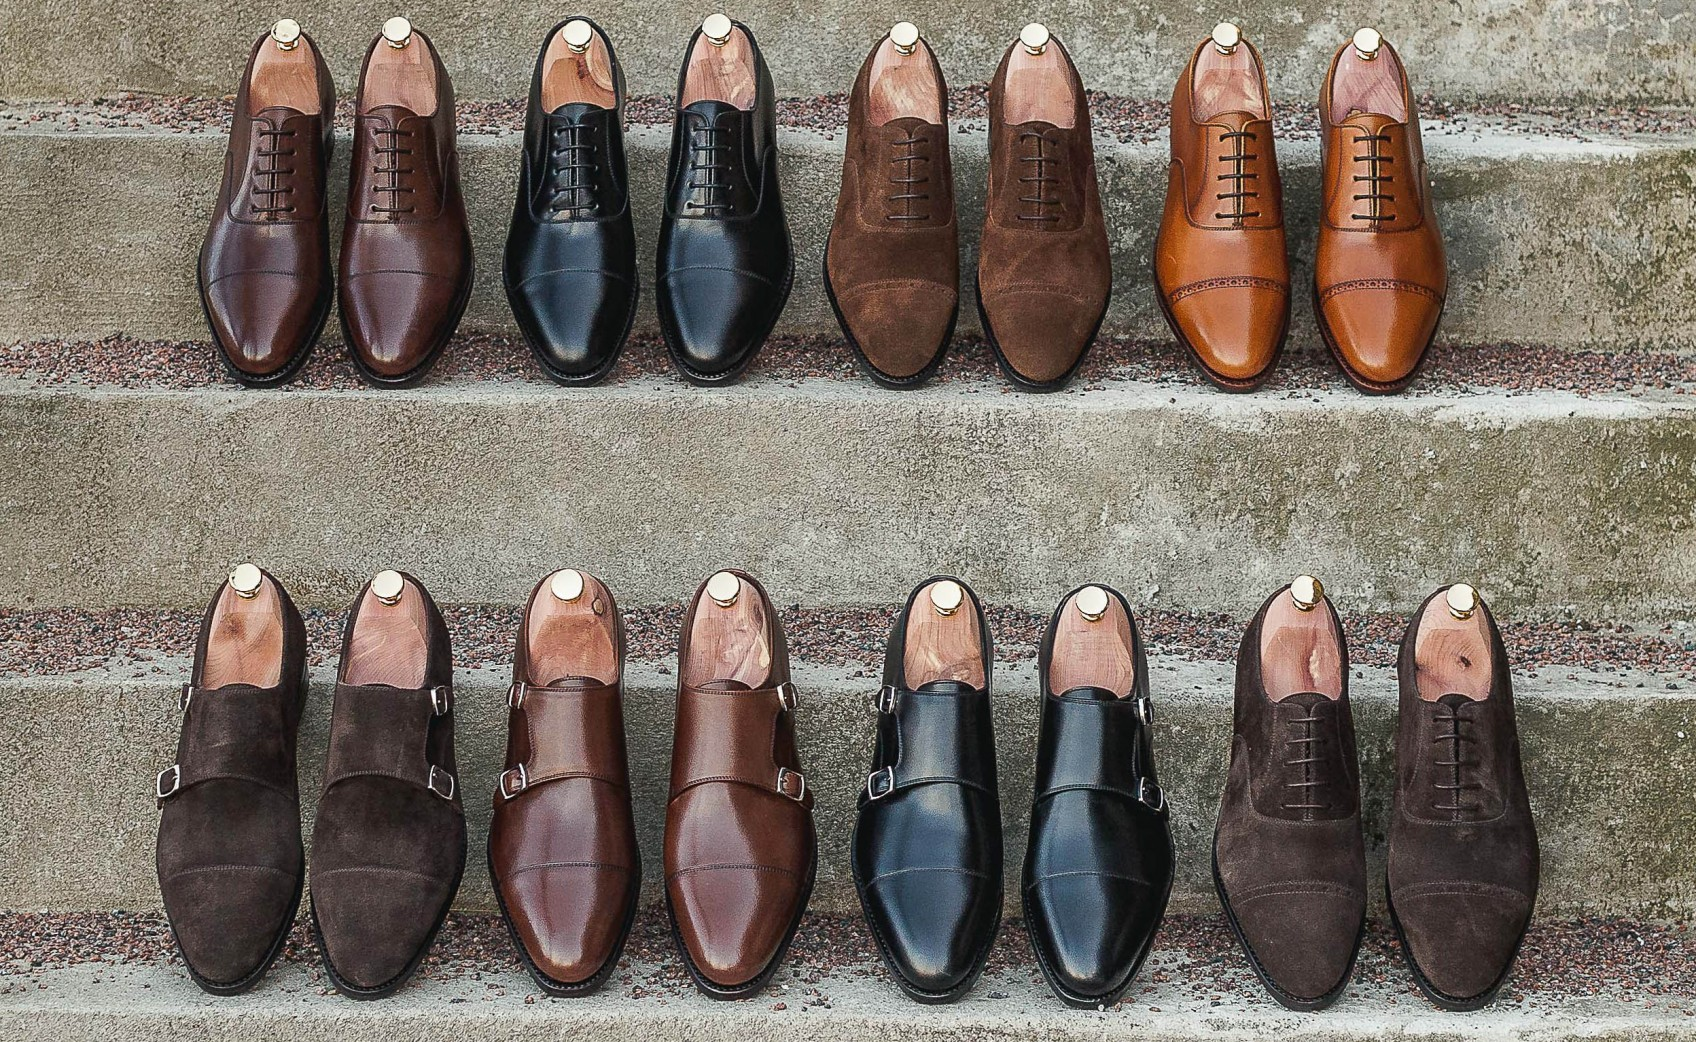 b41ddd64b6a Best Men s Dress Shoes 2019 -Skolyx Lineup - Picture By Shoegazing